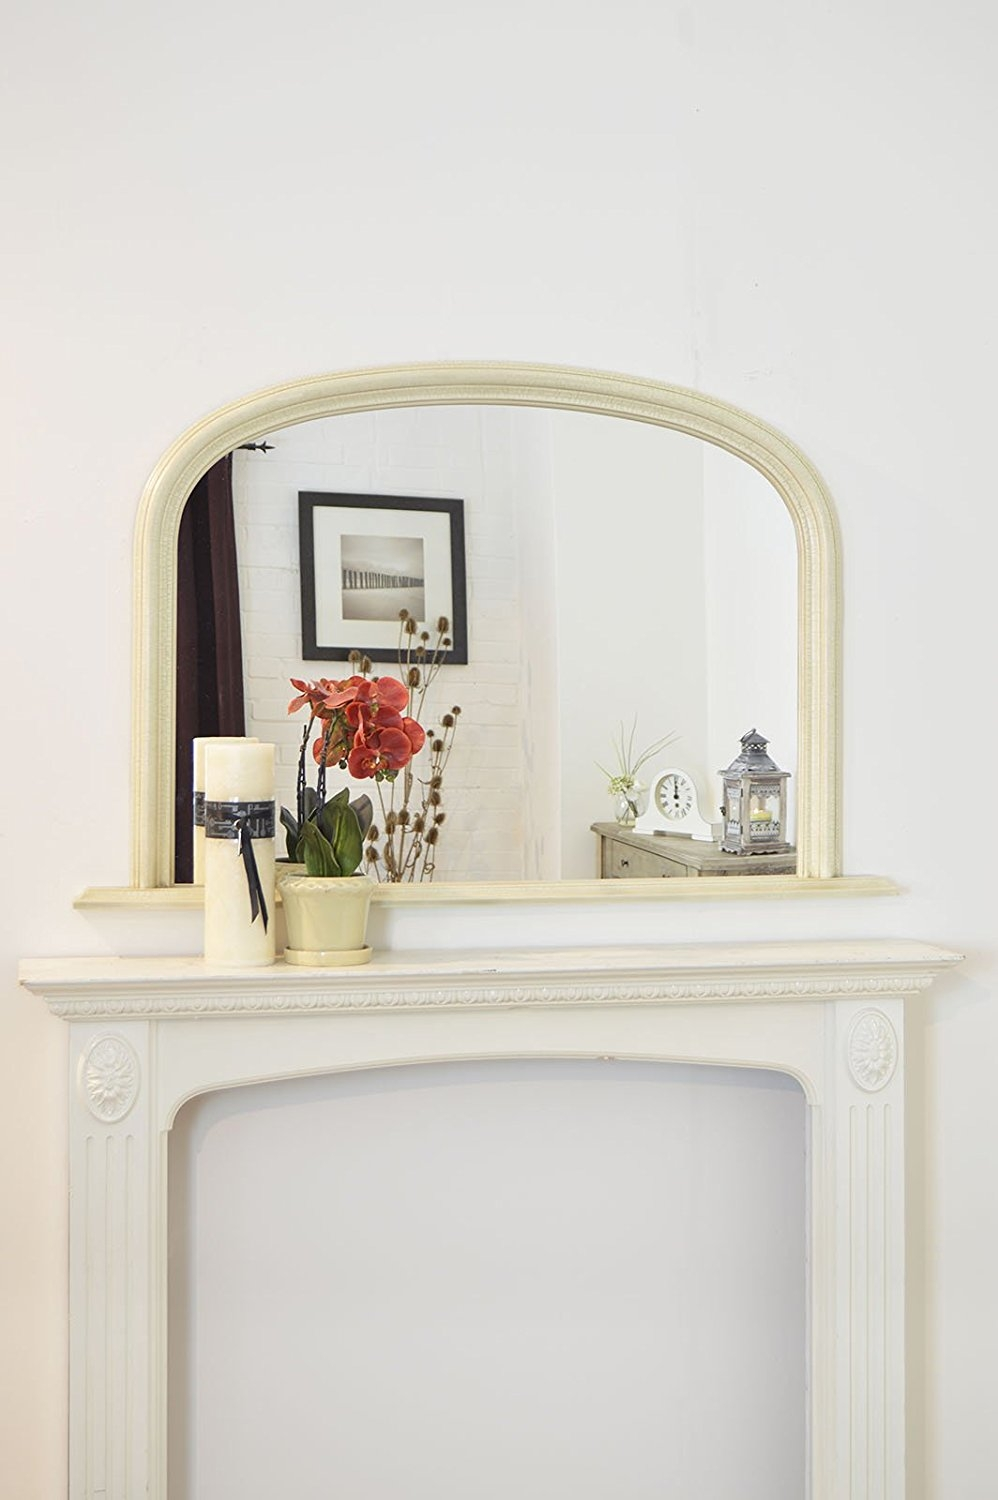 4ft X 2ft6 122cmx76cm Large Ivorycream Framed Overmantle Regarding Cream Antique Mirror (View 7 of 15)